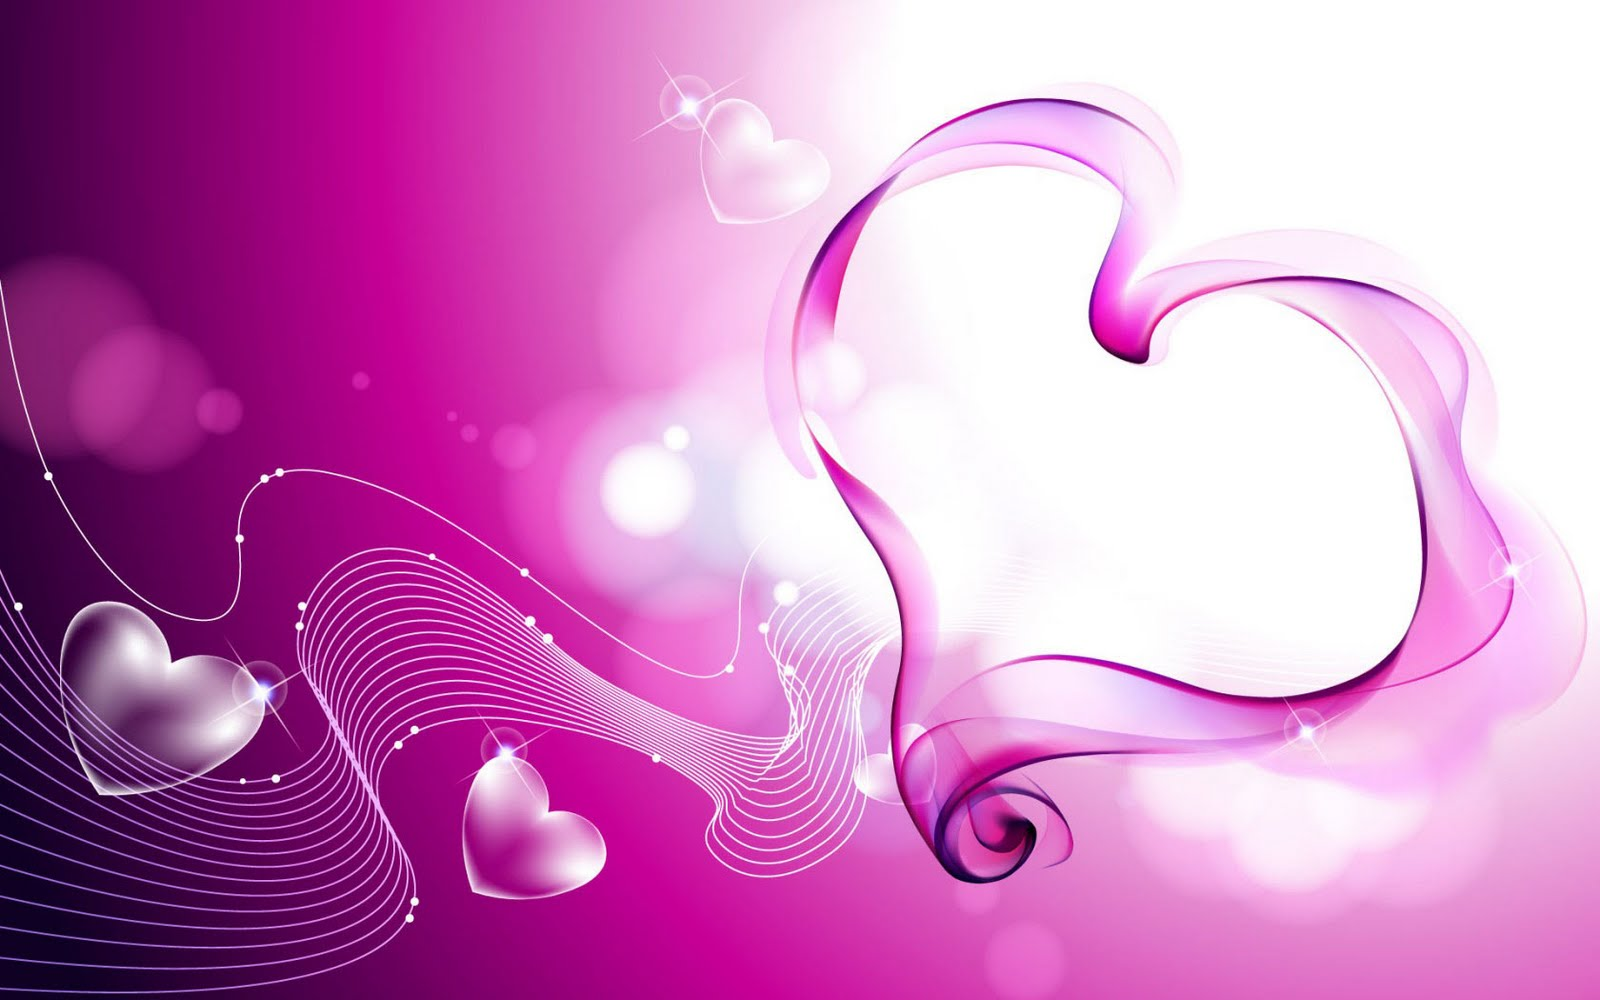 Pink Love Wallpaper: Pink Love Hearts Smoke Wallpaper